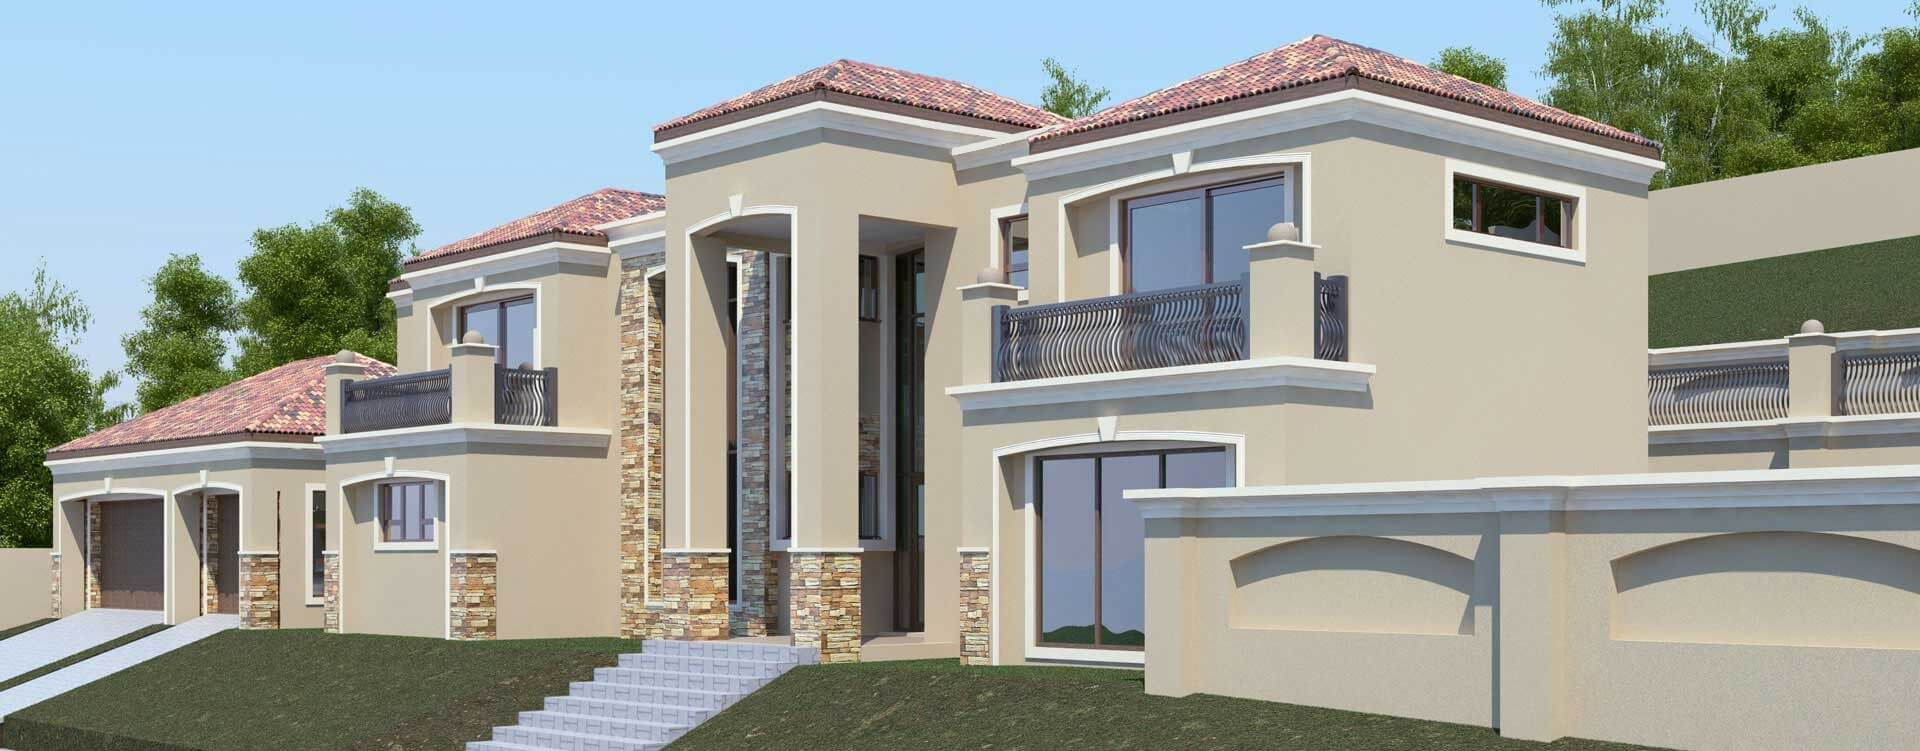 Types Of Beautiful House In Gauteng